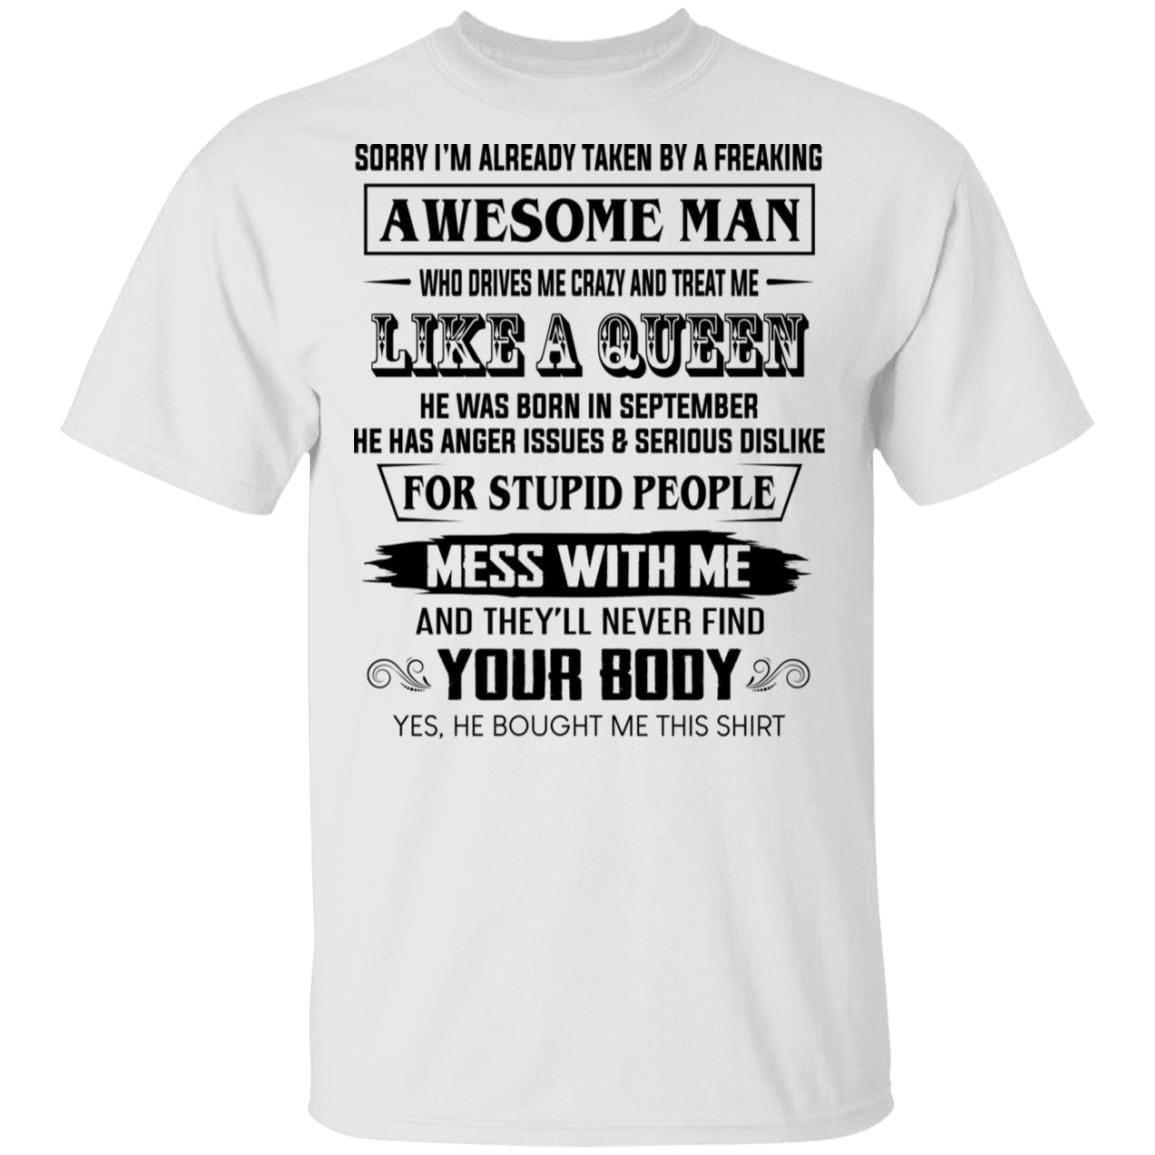 I'm Already Taken By A Freaking Awesome Man Who Drives Me Crazy And Born In September T-Shirts, Hoodies 1049-9974-86602240-48300 - Tee Ript